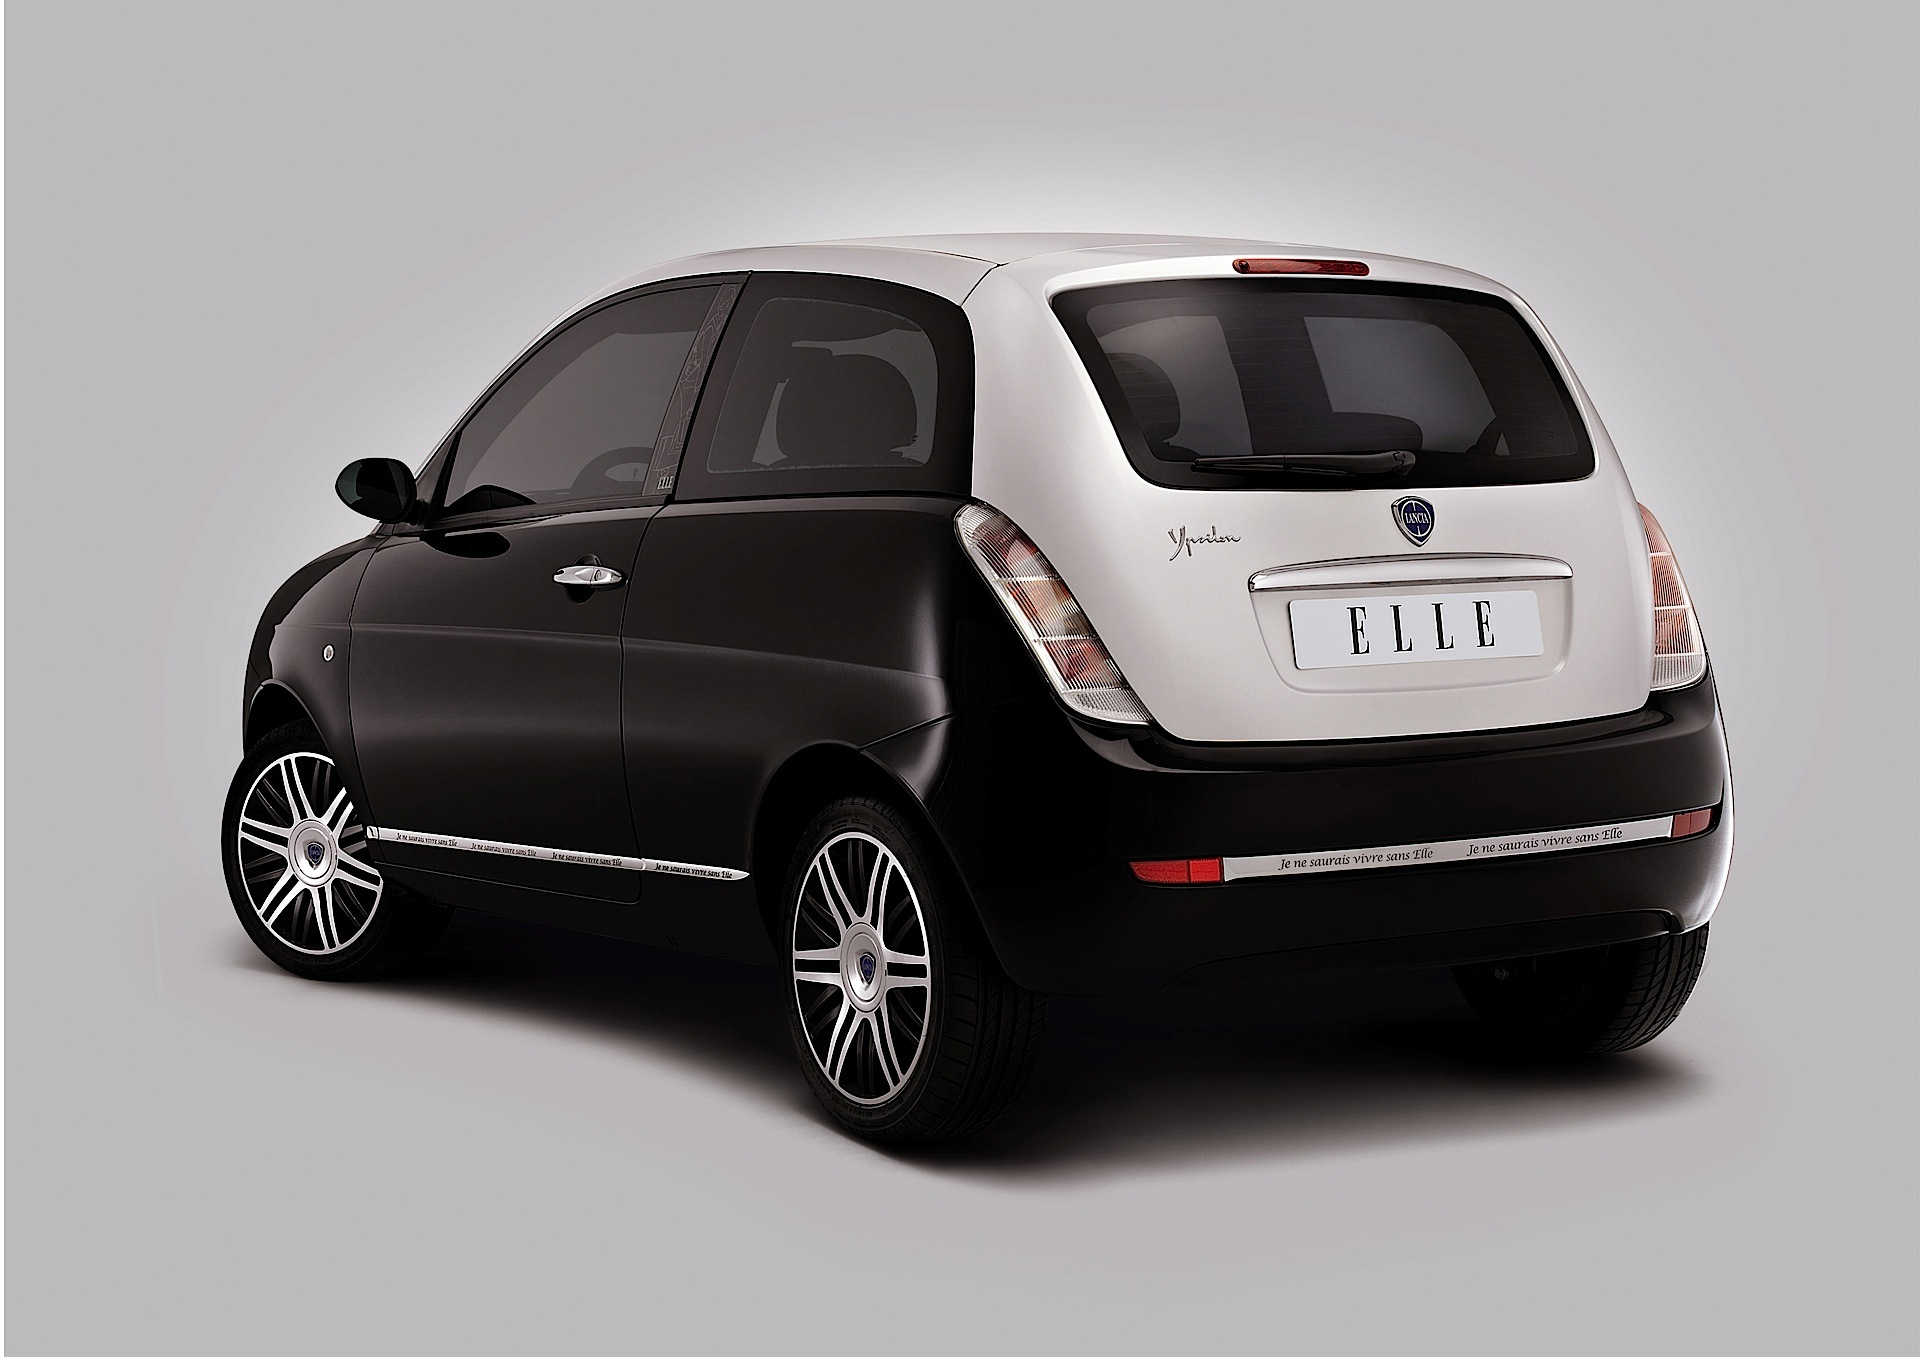 lancia ypsilon unyca specs 2010 2011 autoevolution. Black Bedroom Furniture Sets. Home Design Ideas